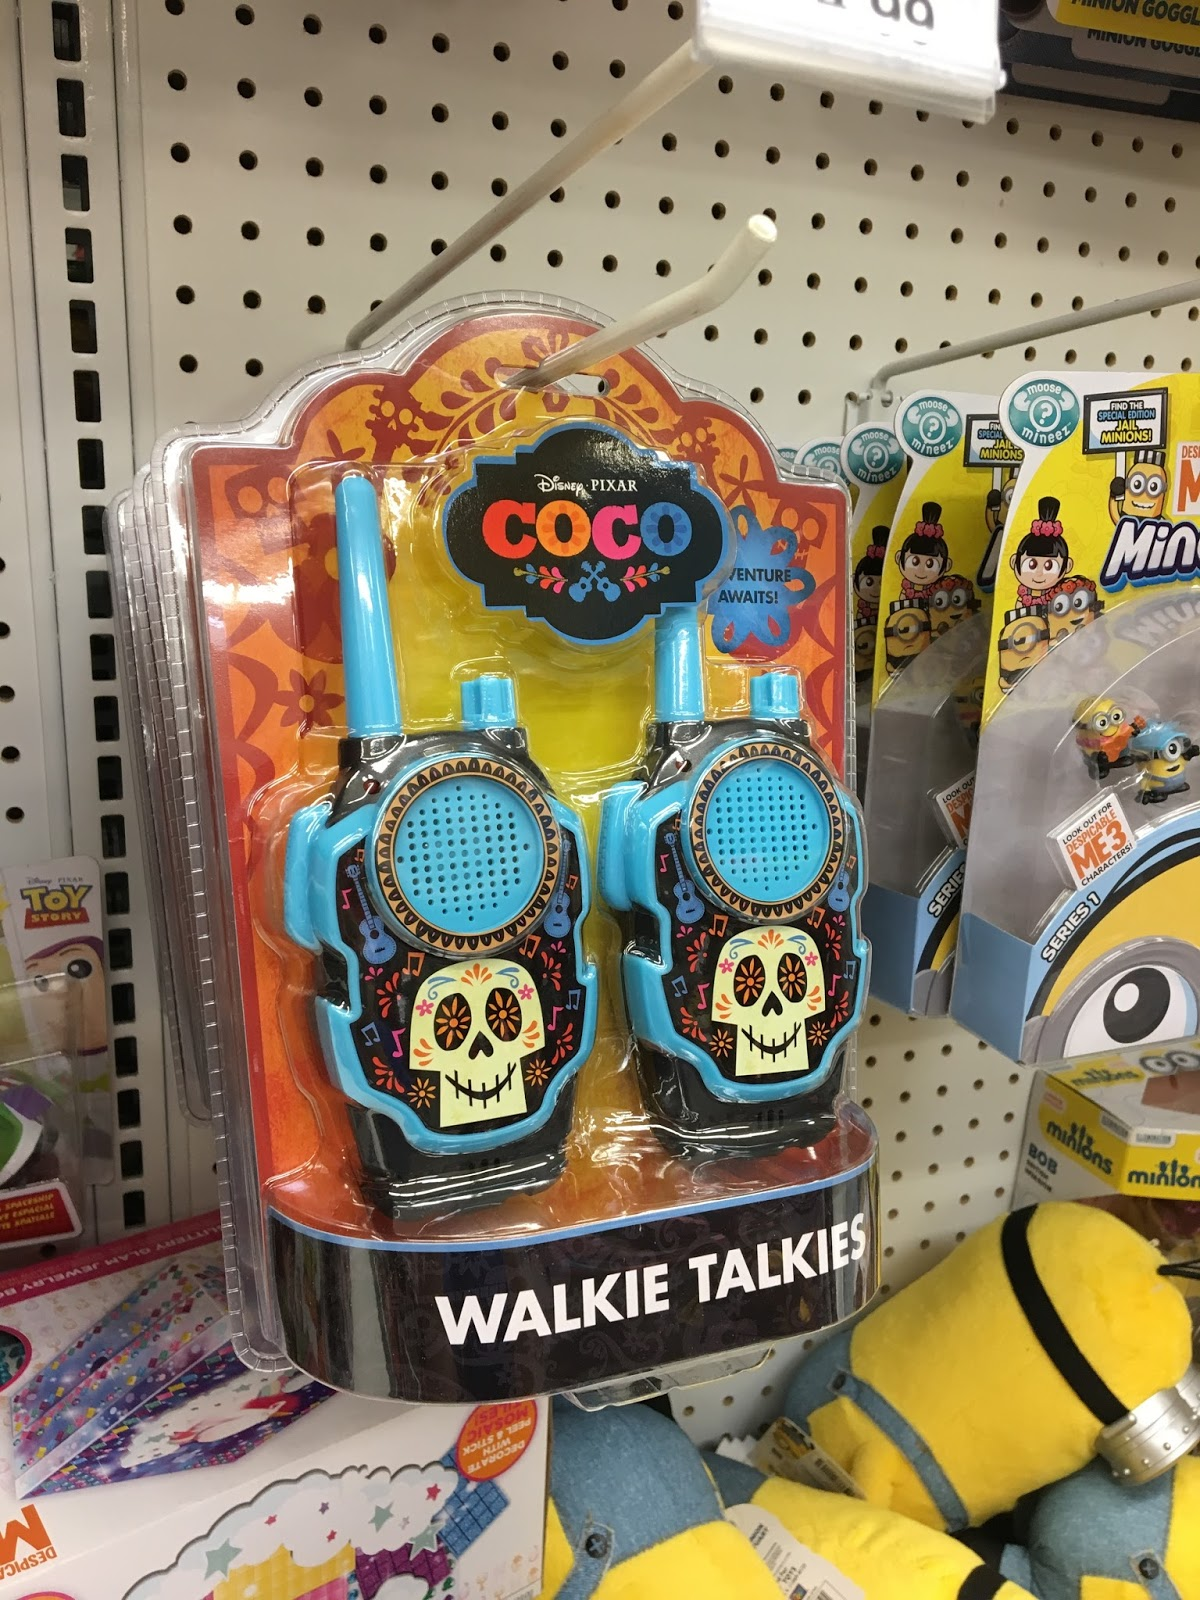 pixar coco toys walkie talkies